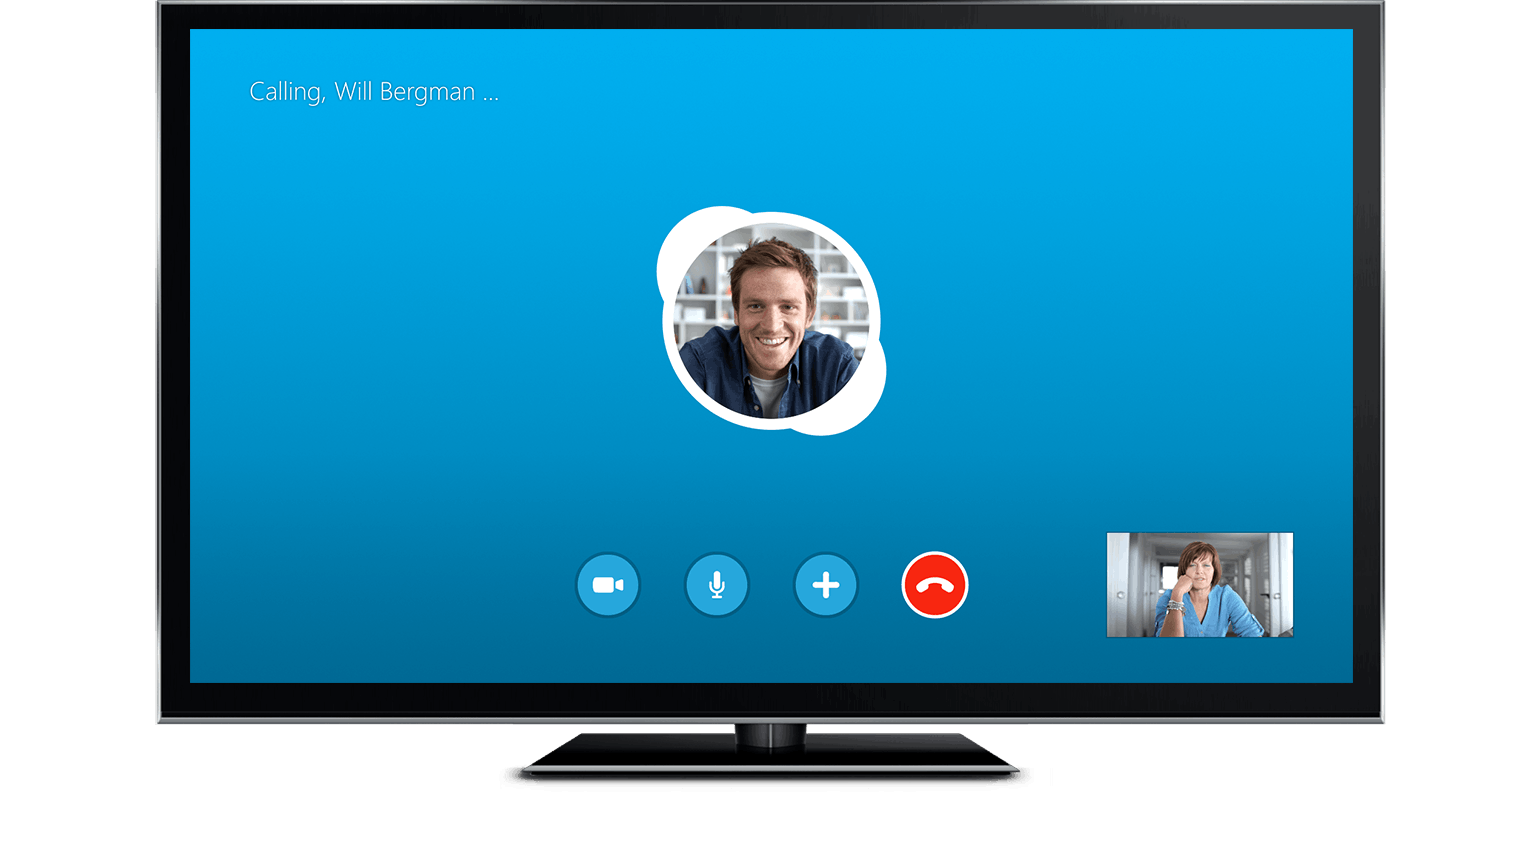 how to join a skype call